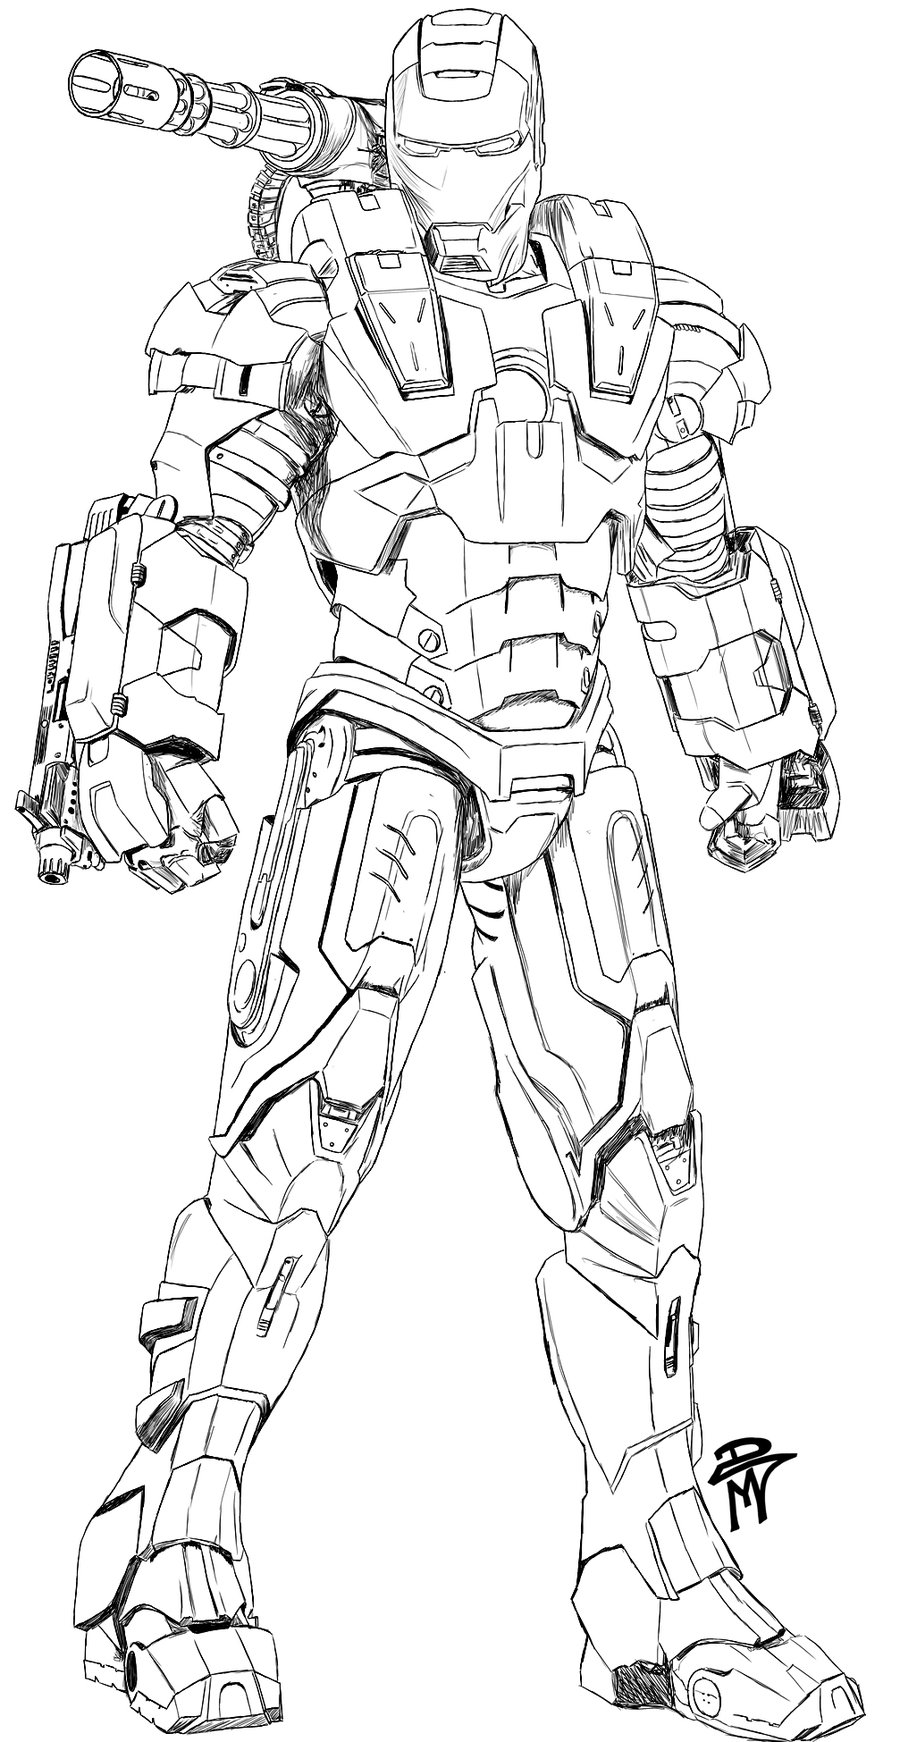 war coloring pages war machine coloring pages download and print for free coloring war pages 1 1